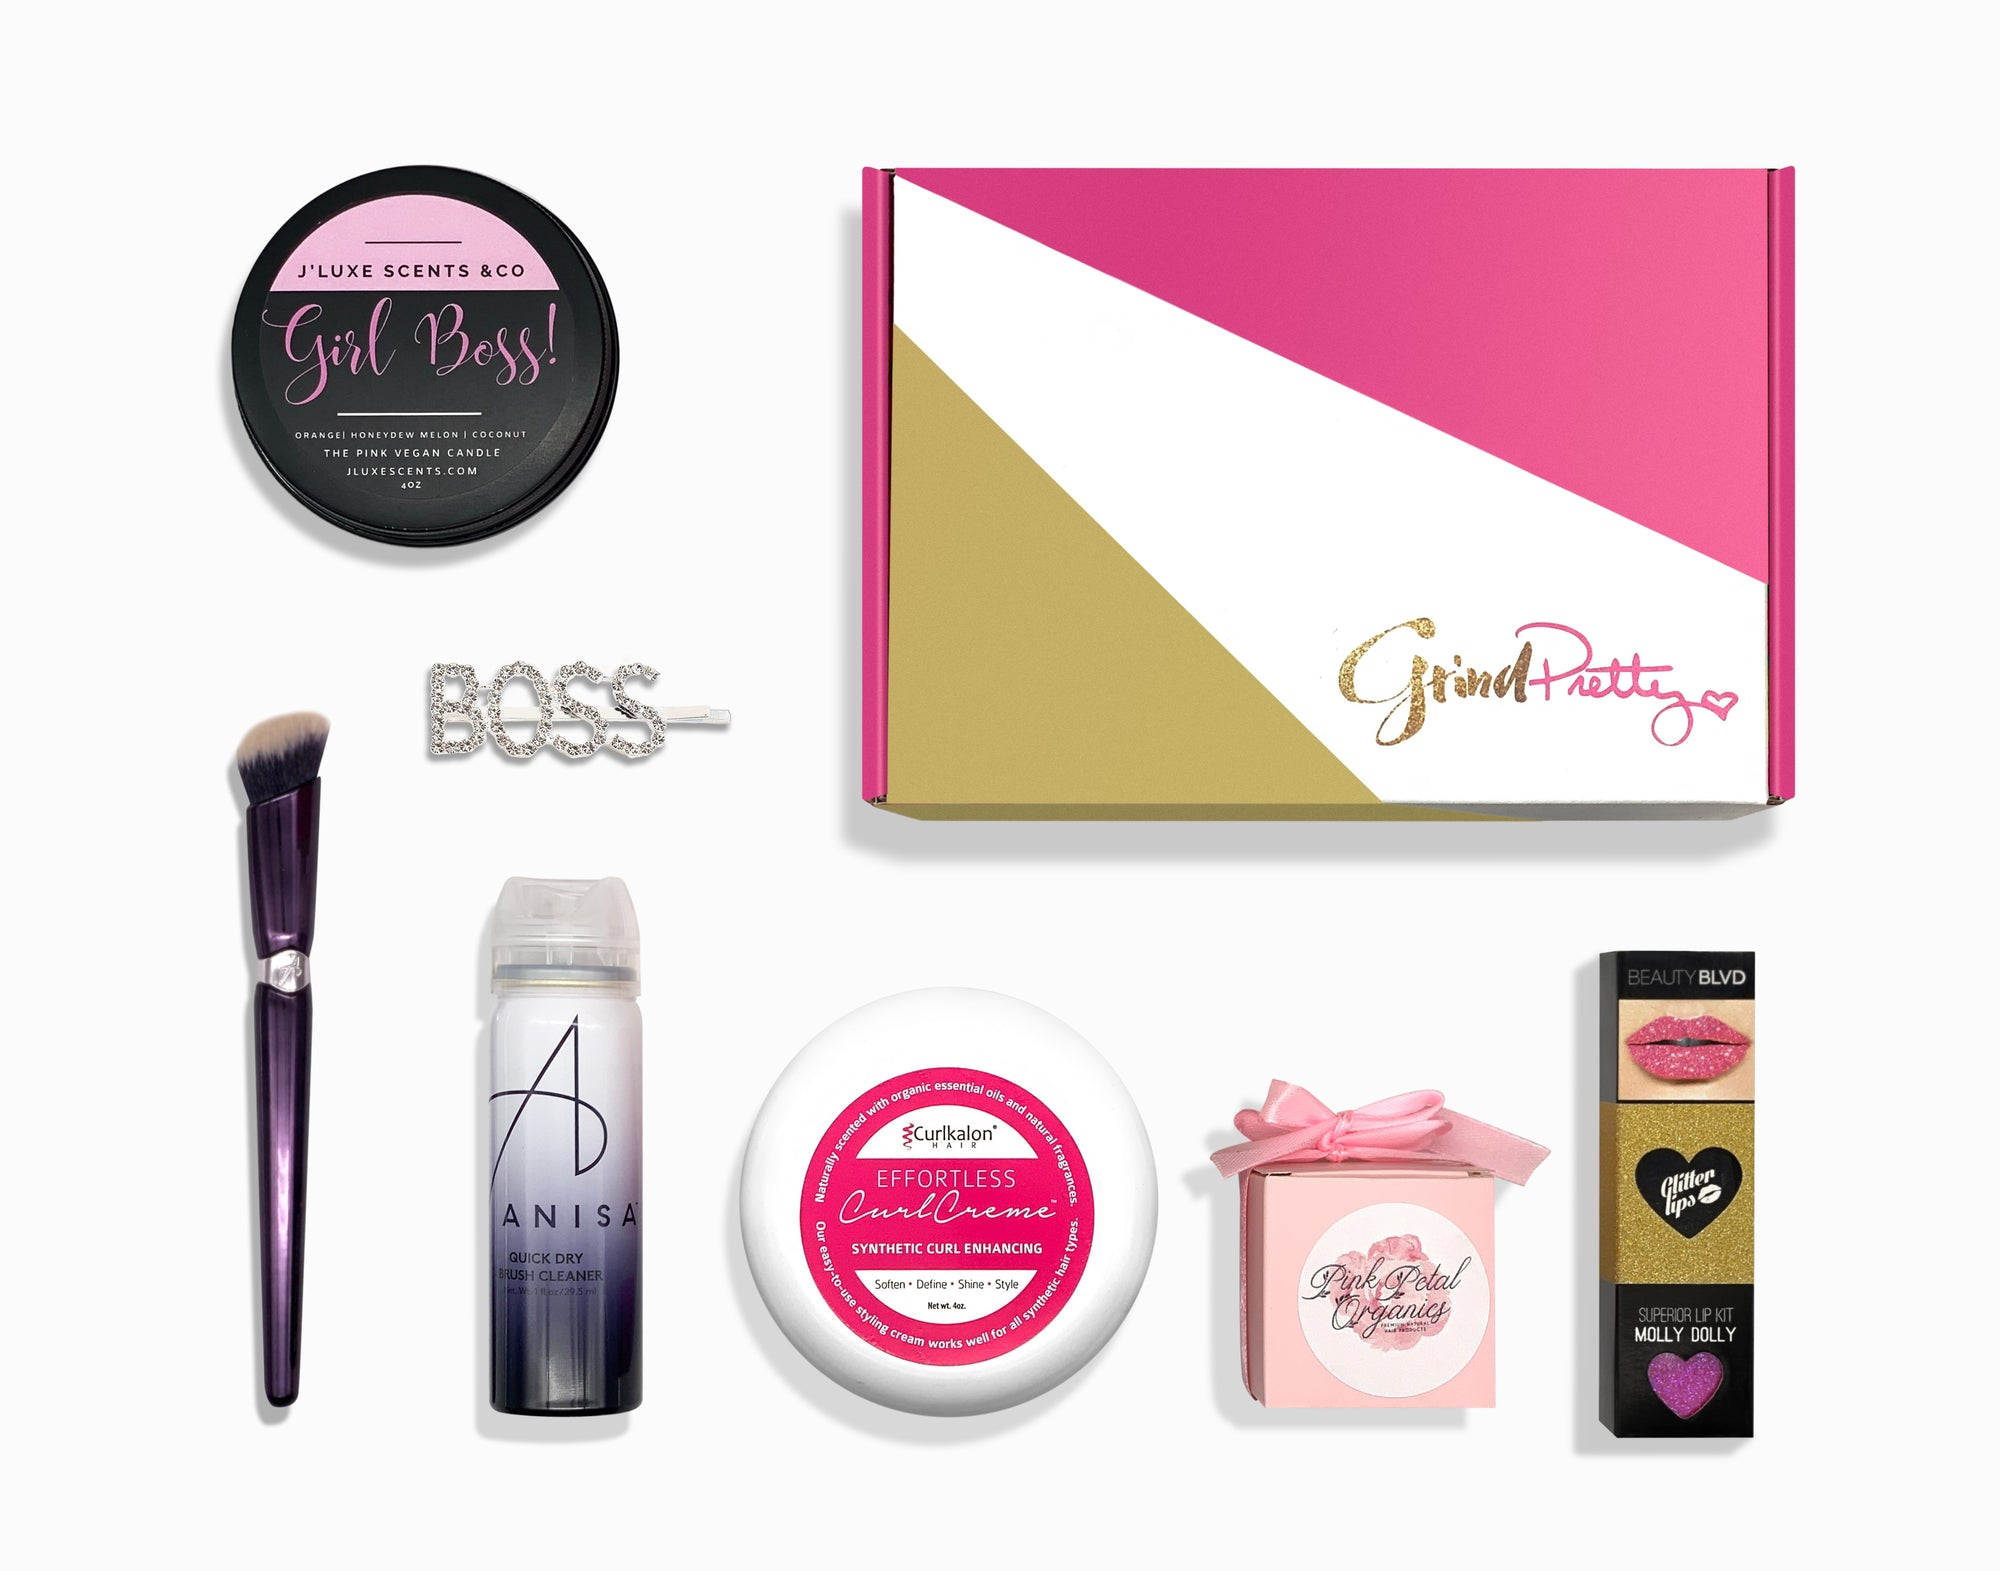 Grind Pretty Box - Winter Box 19